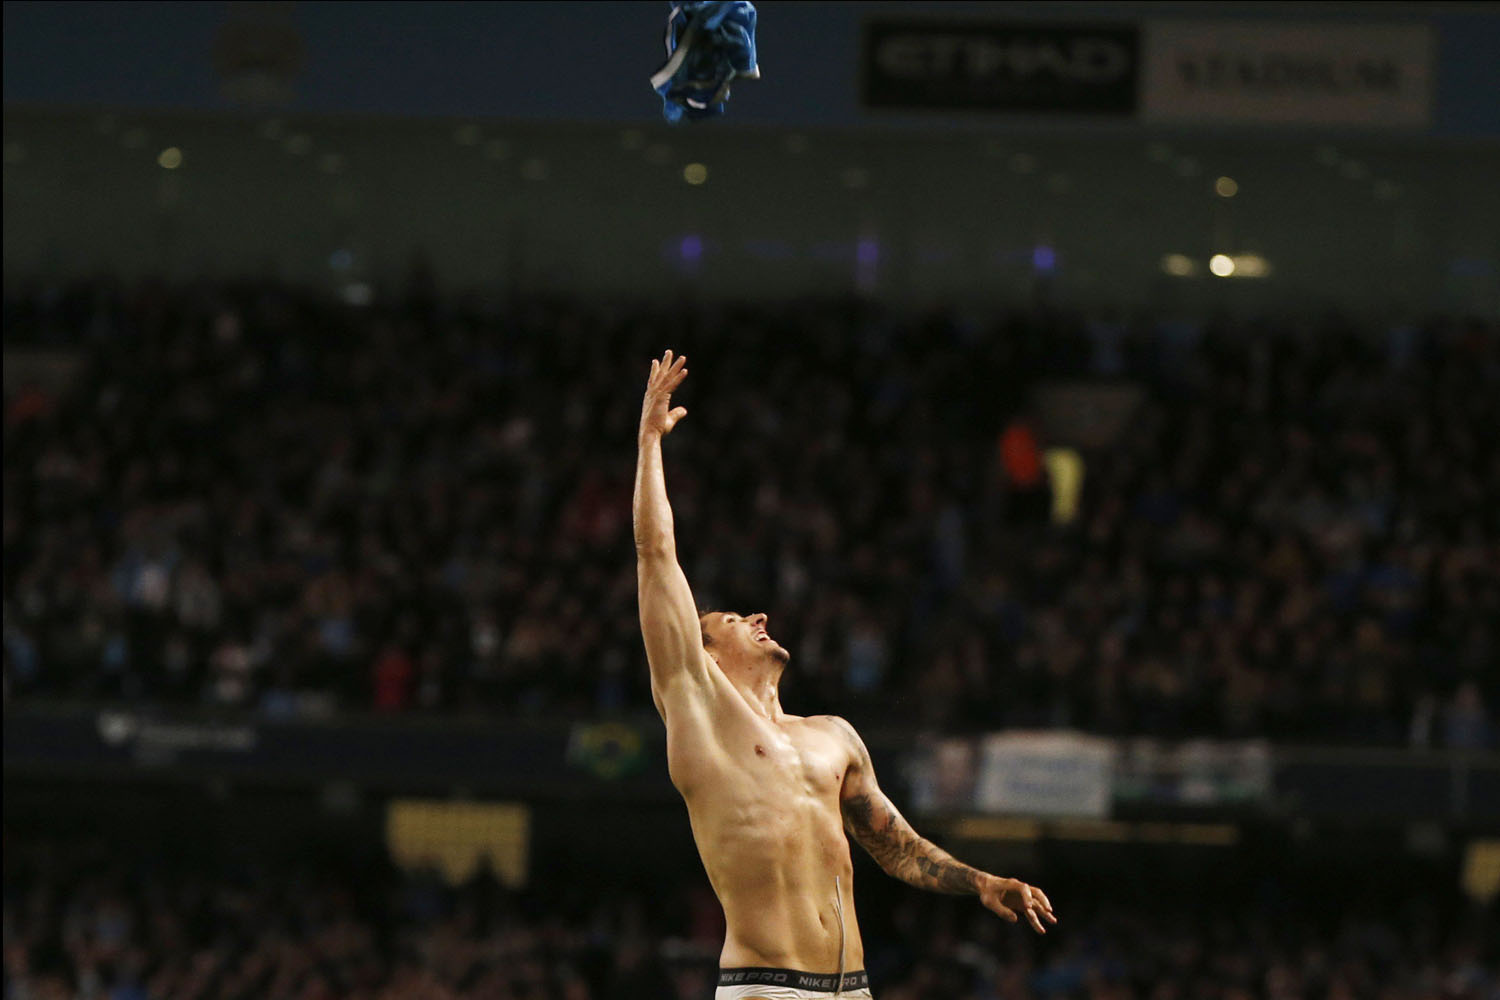 Manchester City's Stevan Jovetic celebrates after scoring a goal against Aston Villa during their English Premier League soccer match at the Etihad Stadium in Manchester, northern England, May 7, 2014.